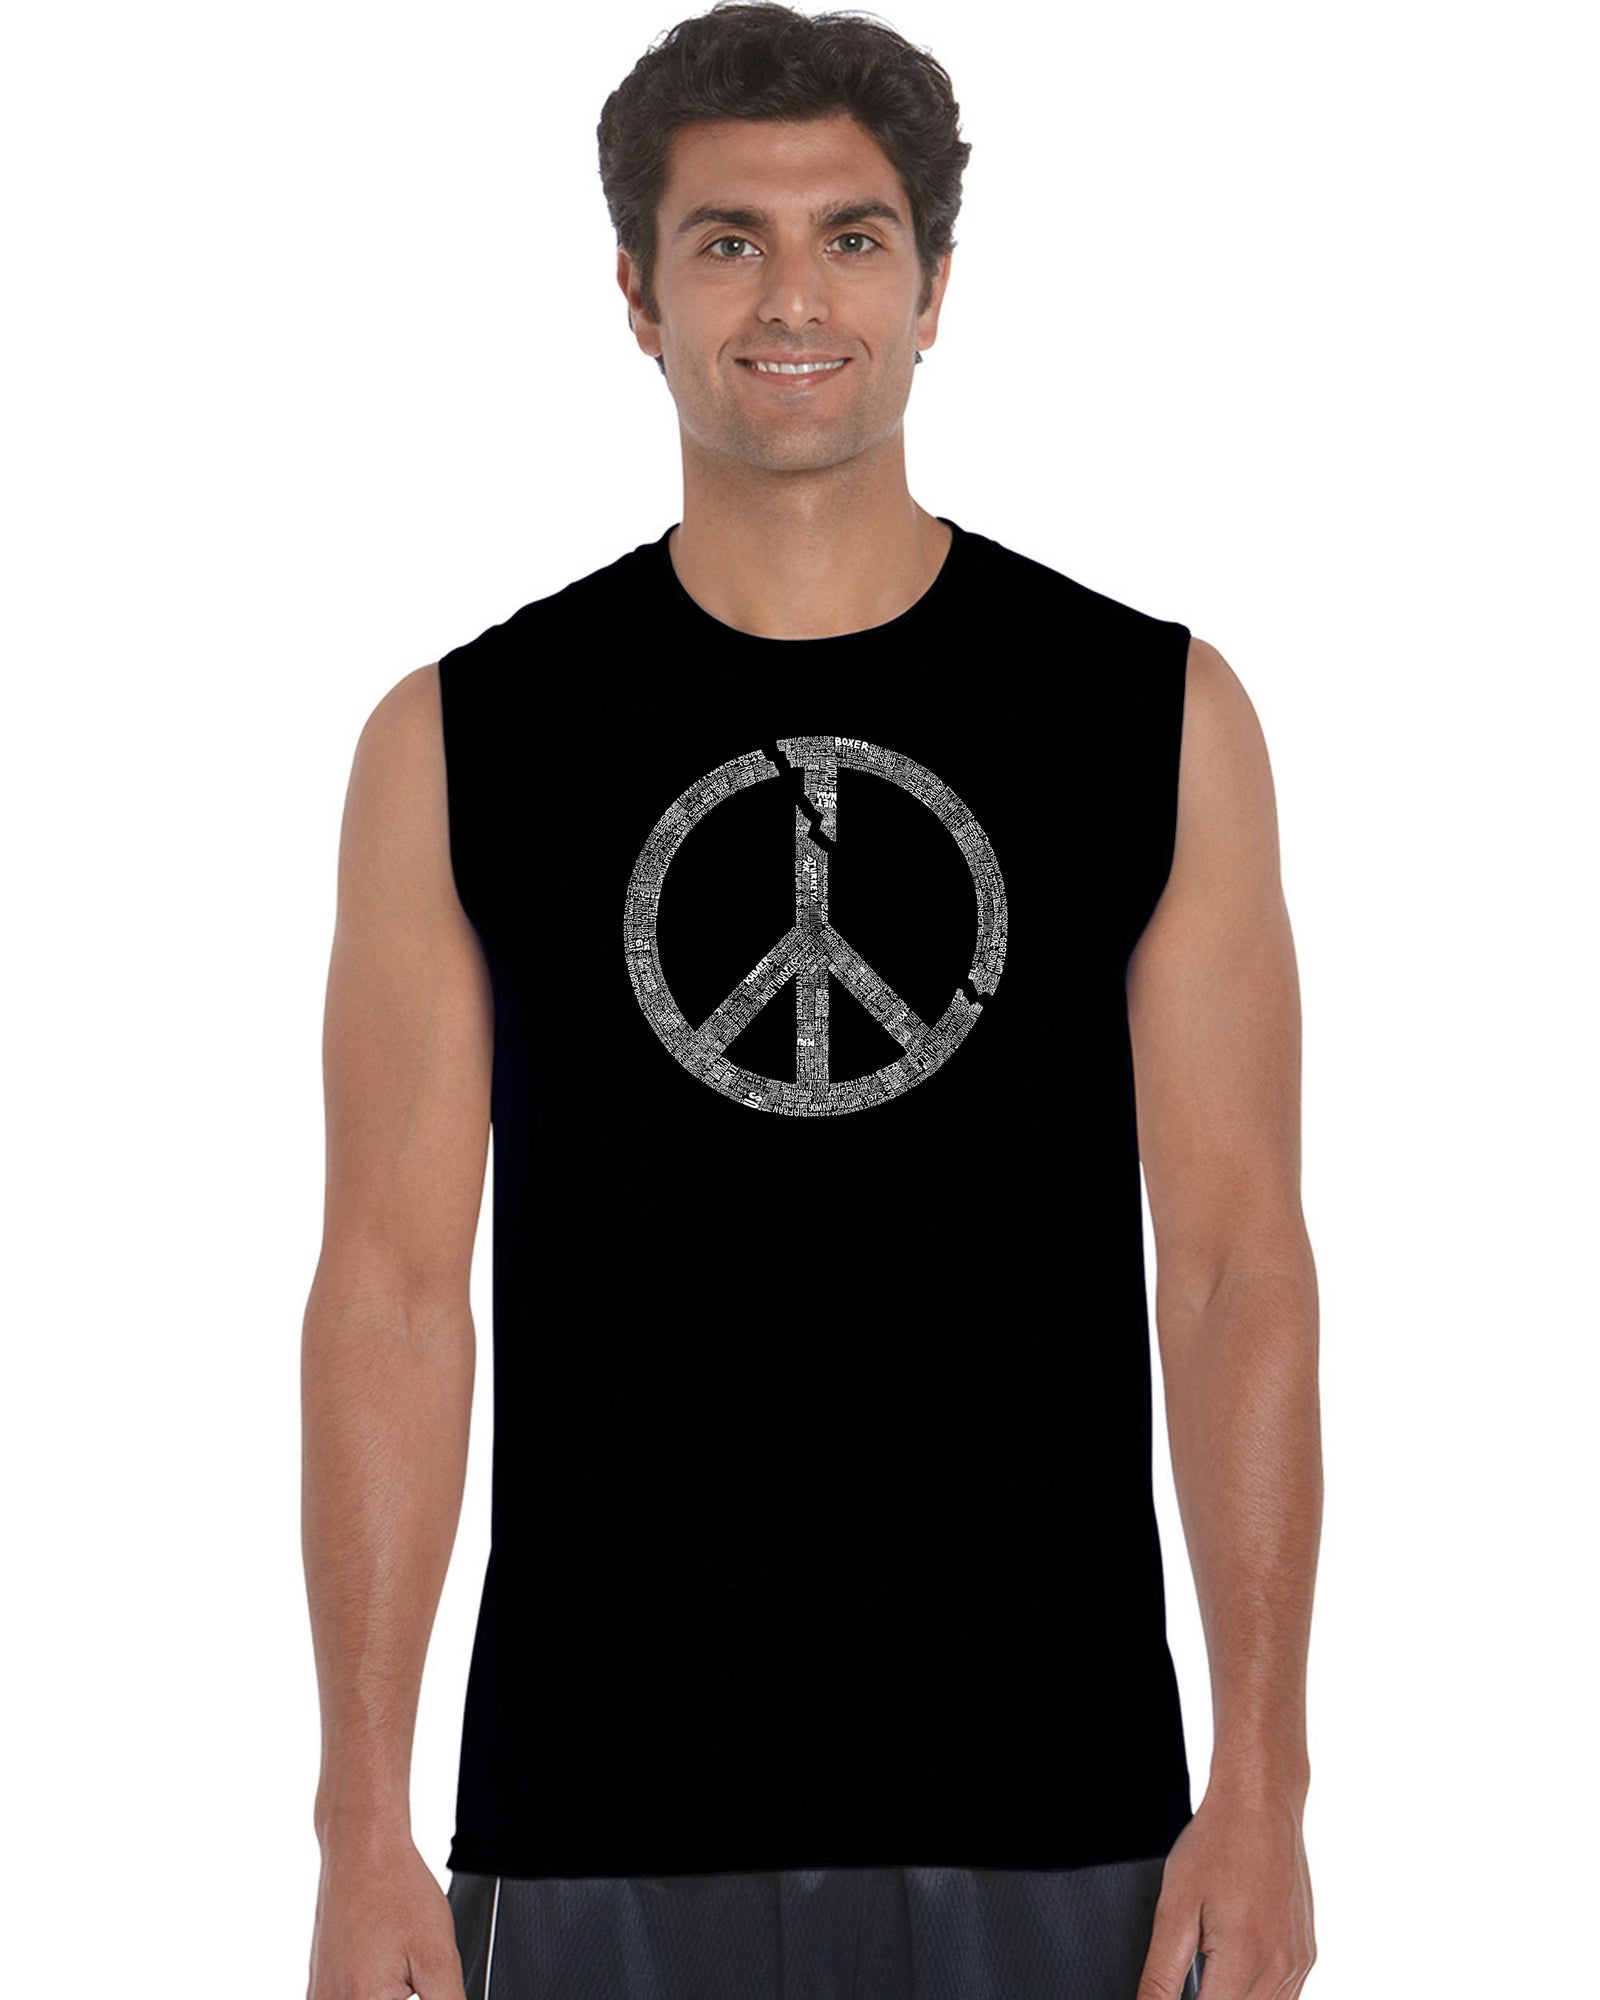 Men's Sleeveless T-shirt - EVERY MAJOR WORLD CONFLICT SINCE 1770